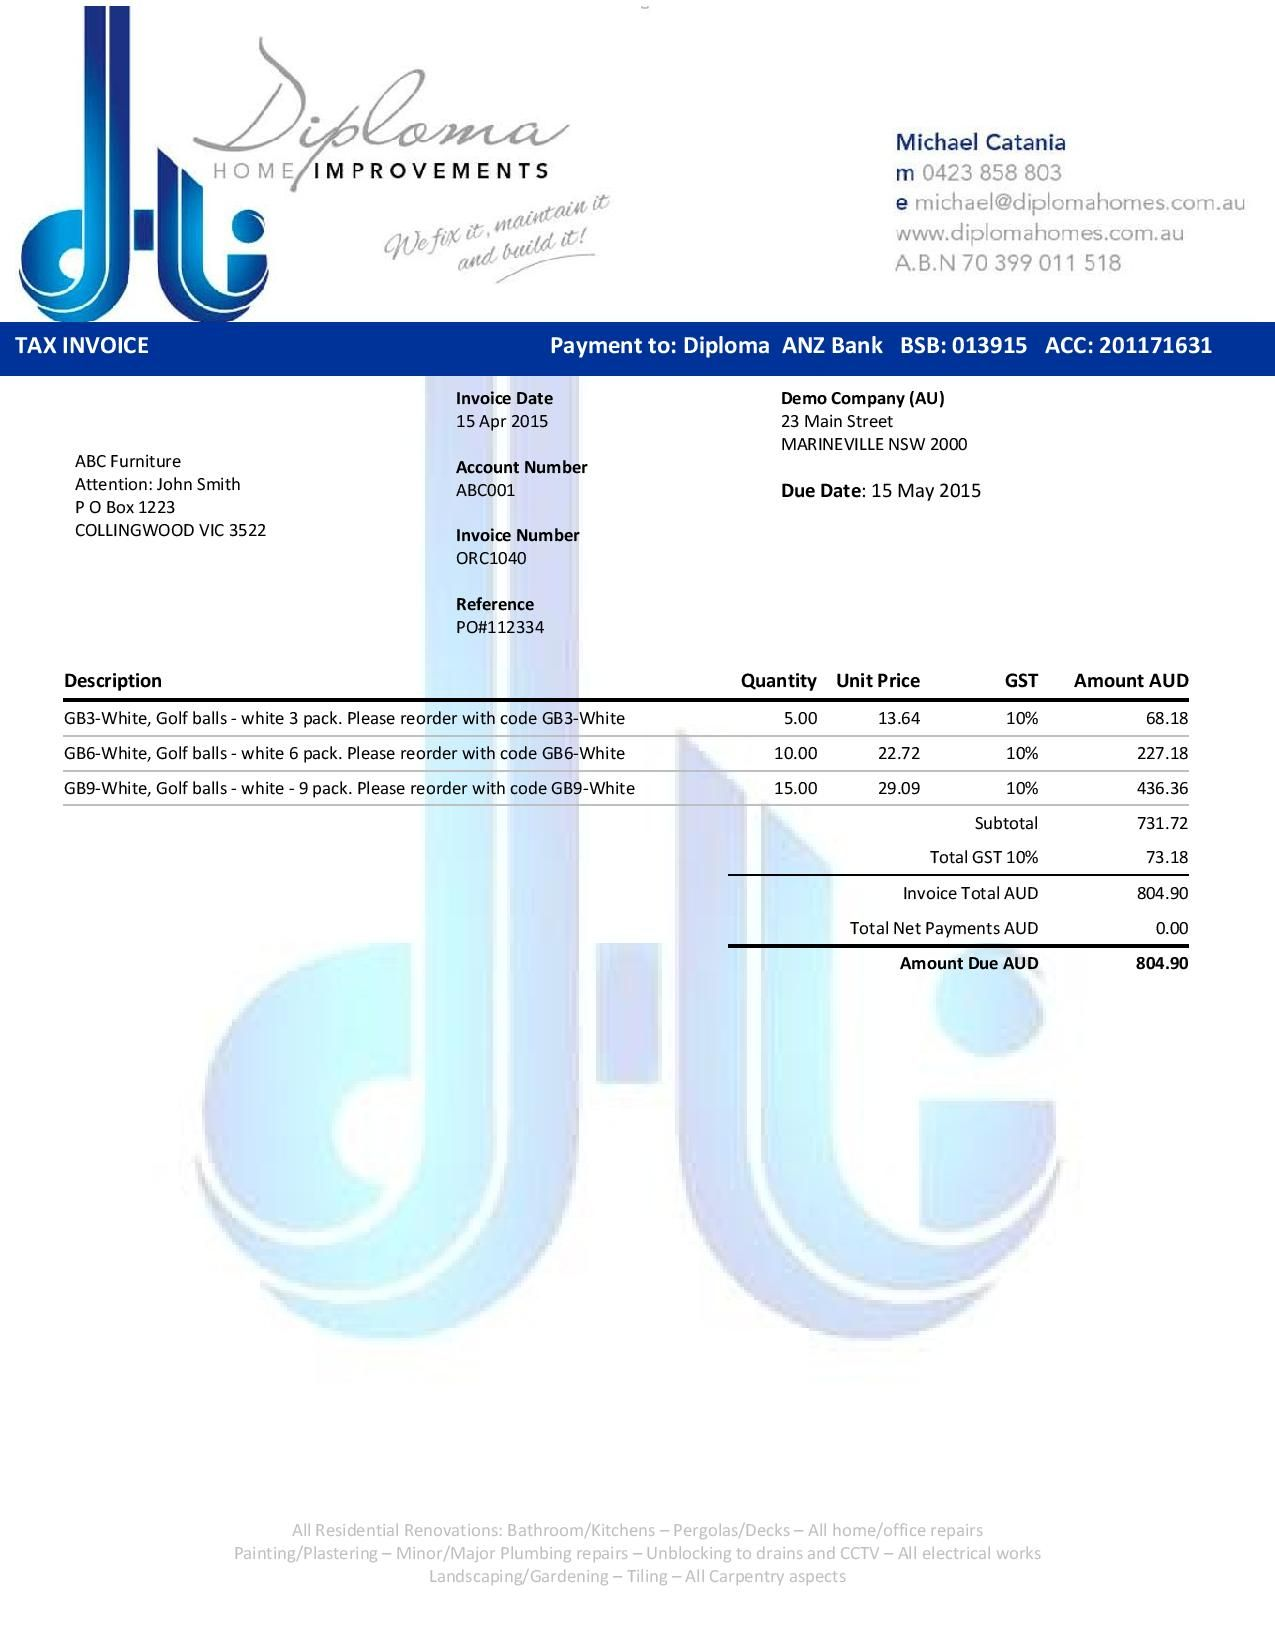 Explore Invoice Template, Templates, And More!  Custom Invoice Template